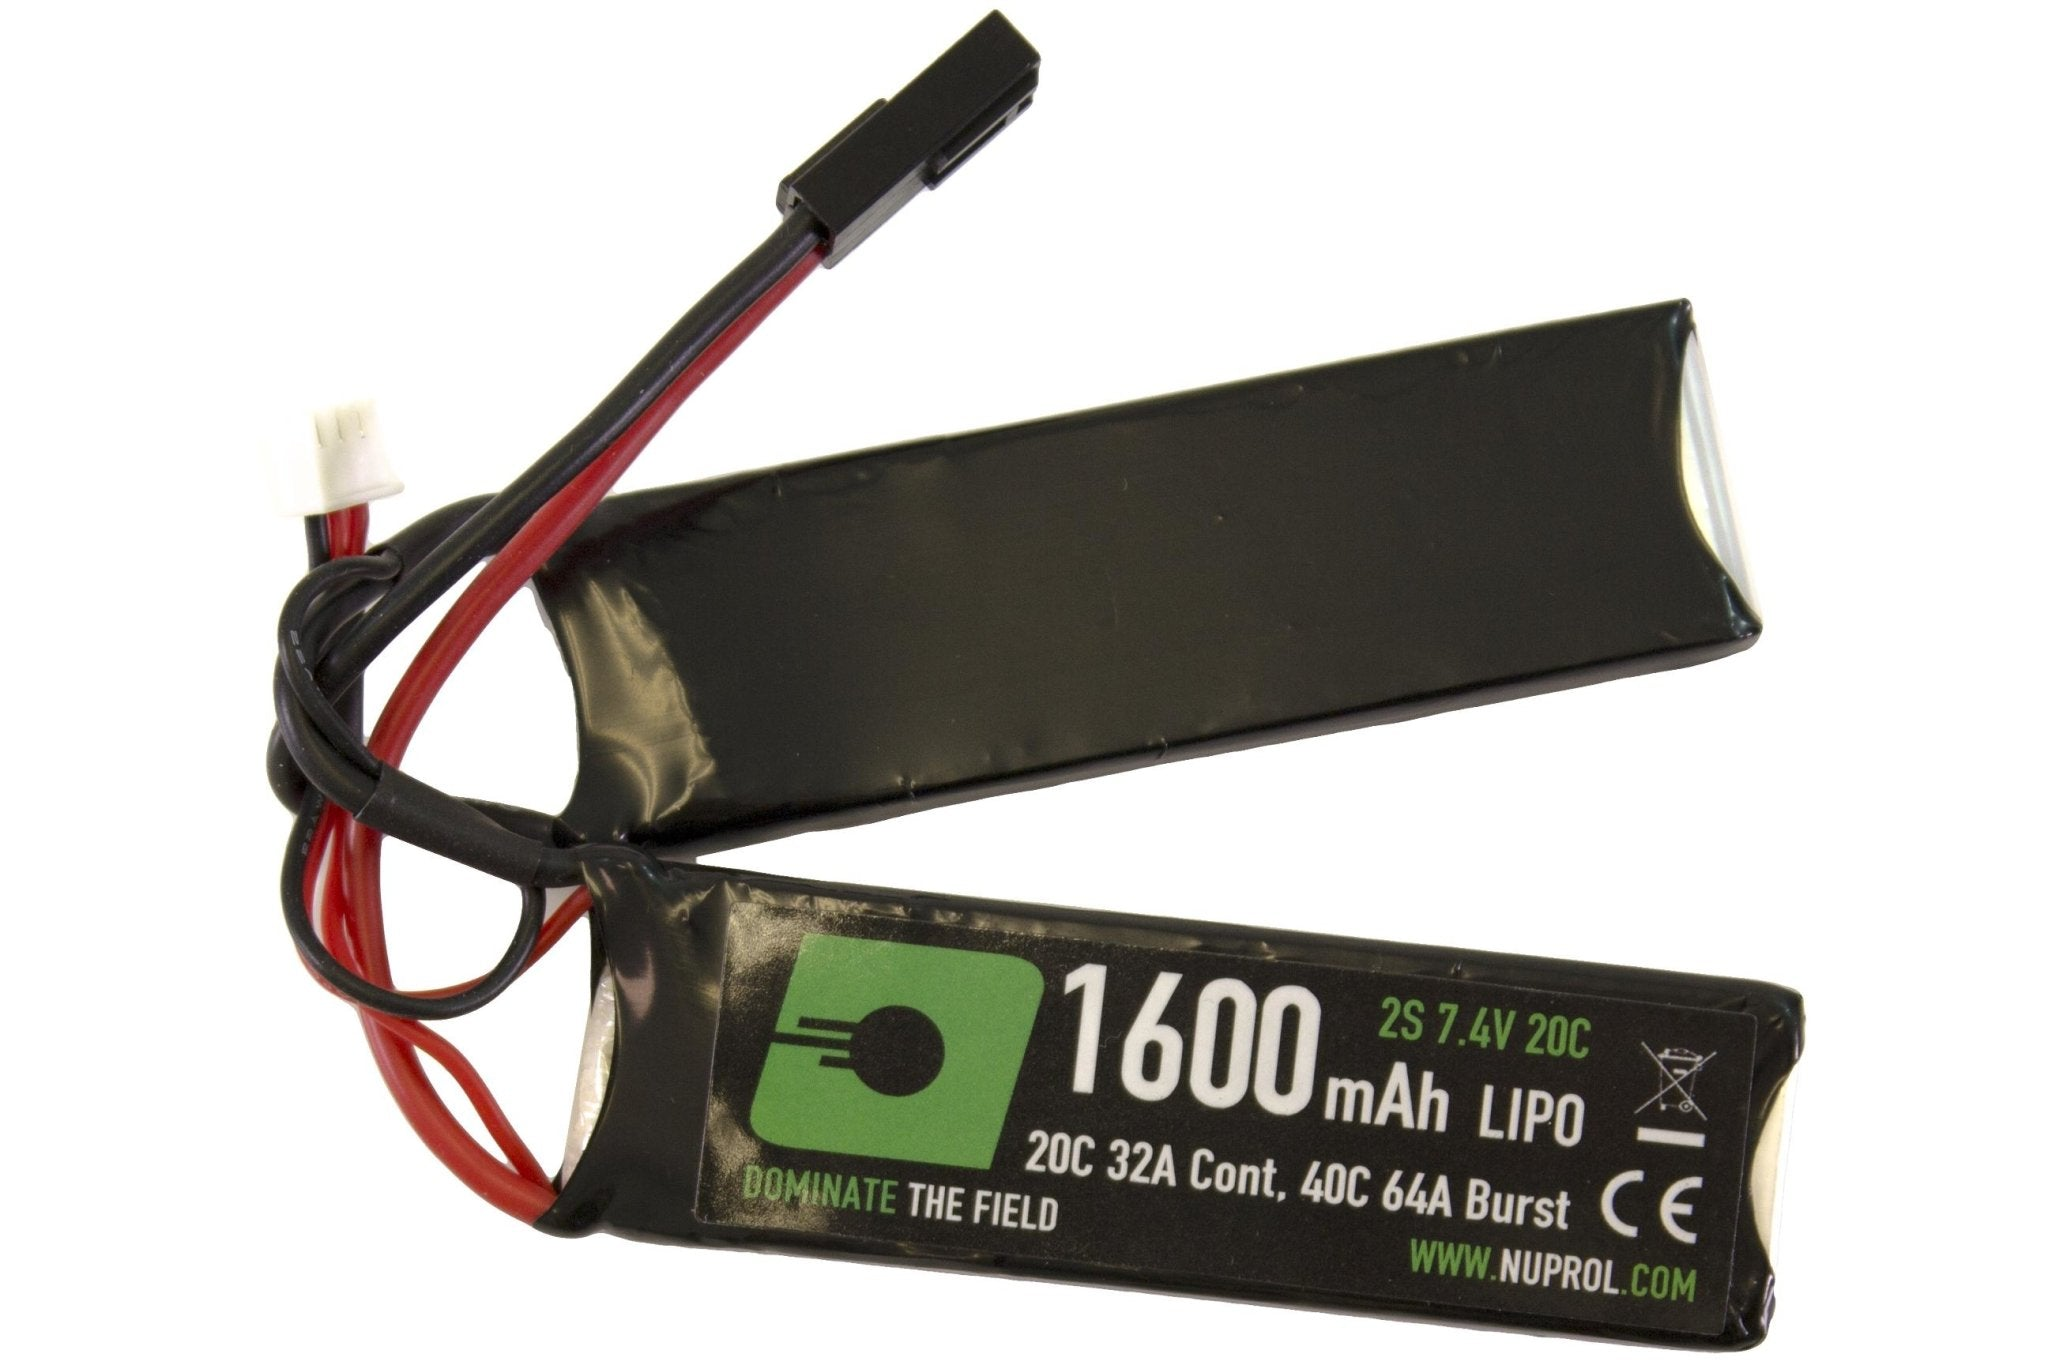 Nuprol Power 1600MAH 7.4V LIPO Nun-Chuck